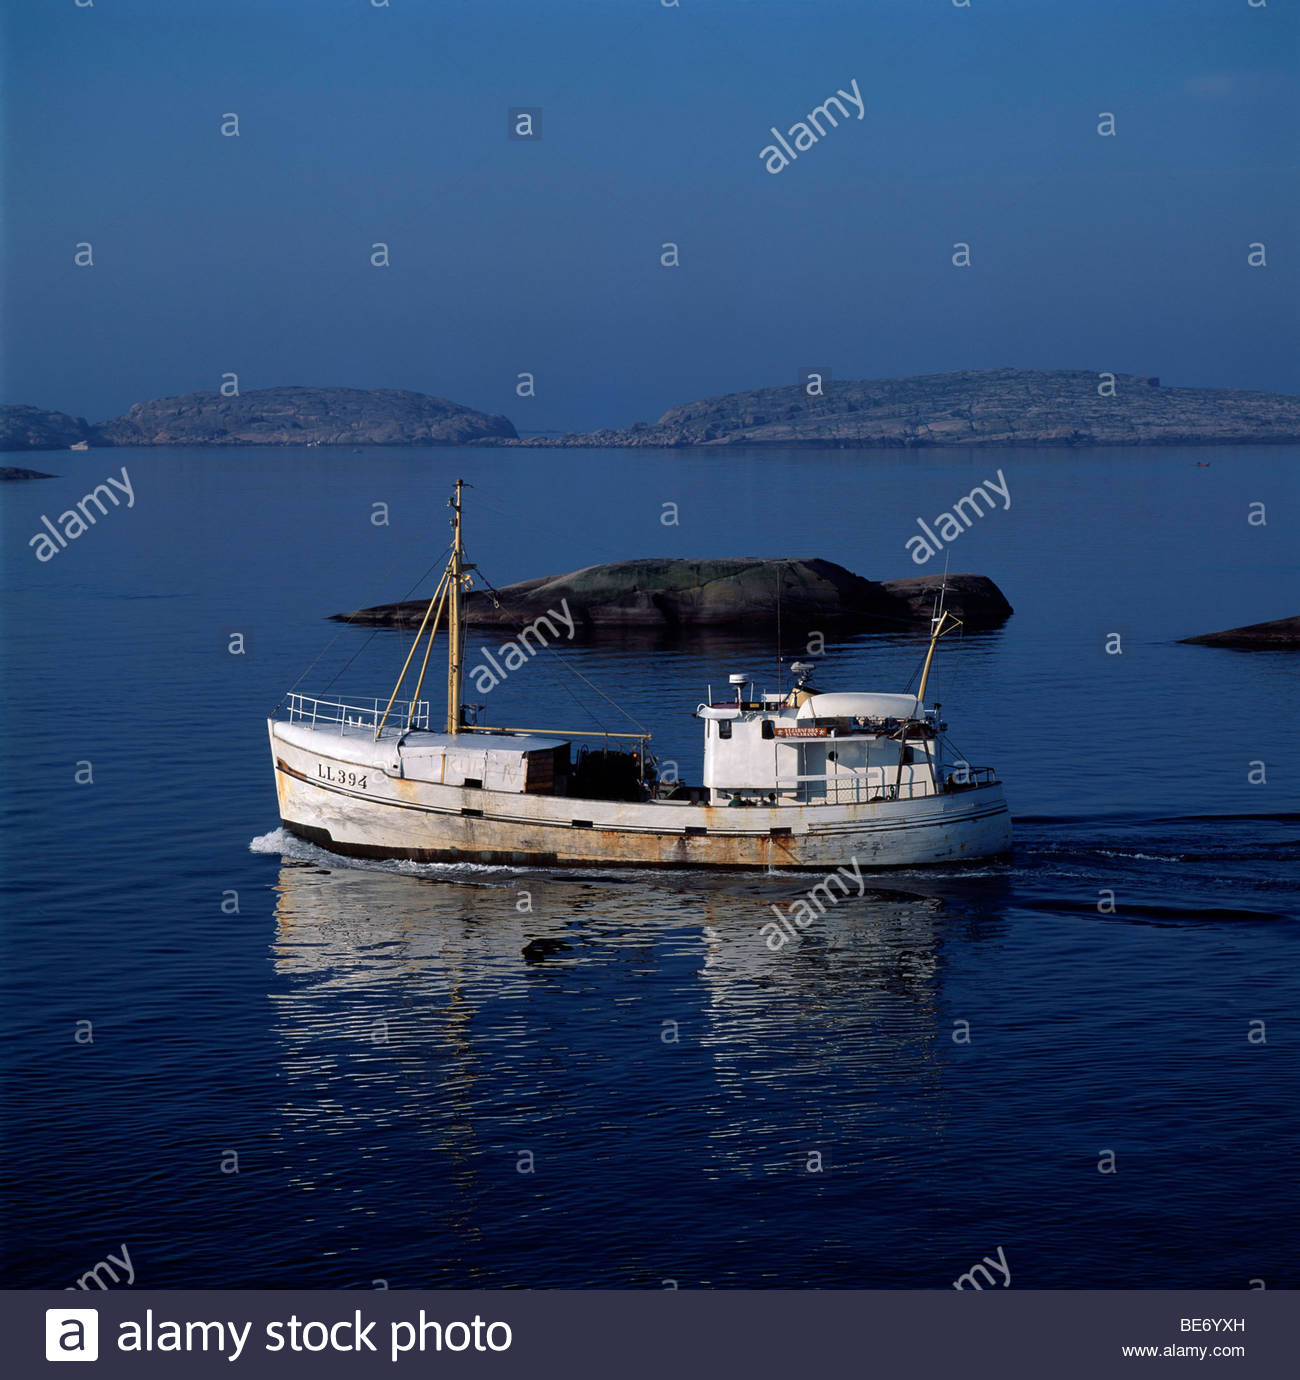 Reflection of a boat in the sea Stock Photo